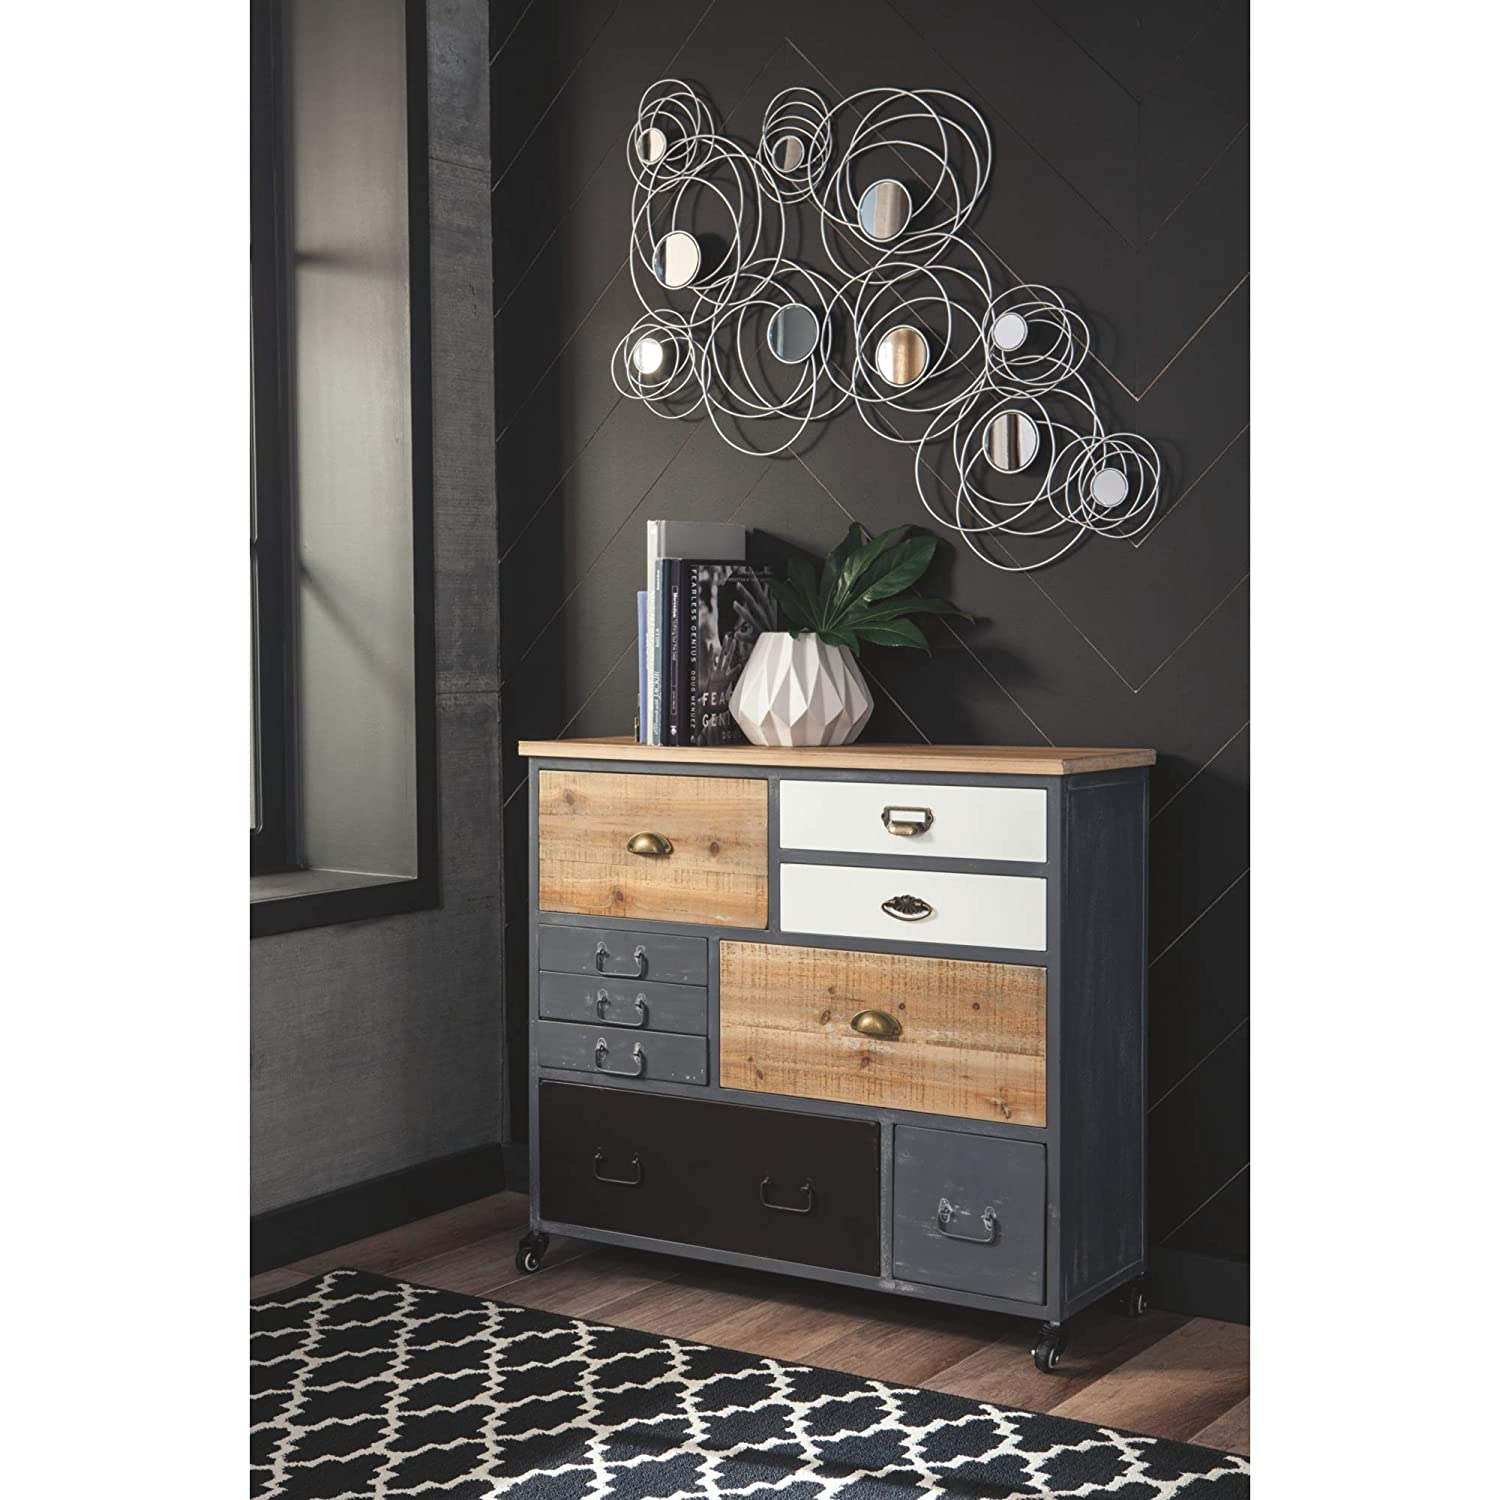 Natural//Gray//Black Finishes Gold//Black//Gray Drawer Handles Caster Wheels Metal /& Solid Reclaimed Wood Ponder Ridge 9-Drawer Accent Cabinet Ashley Furniture Signature Design